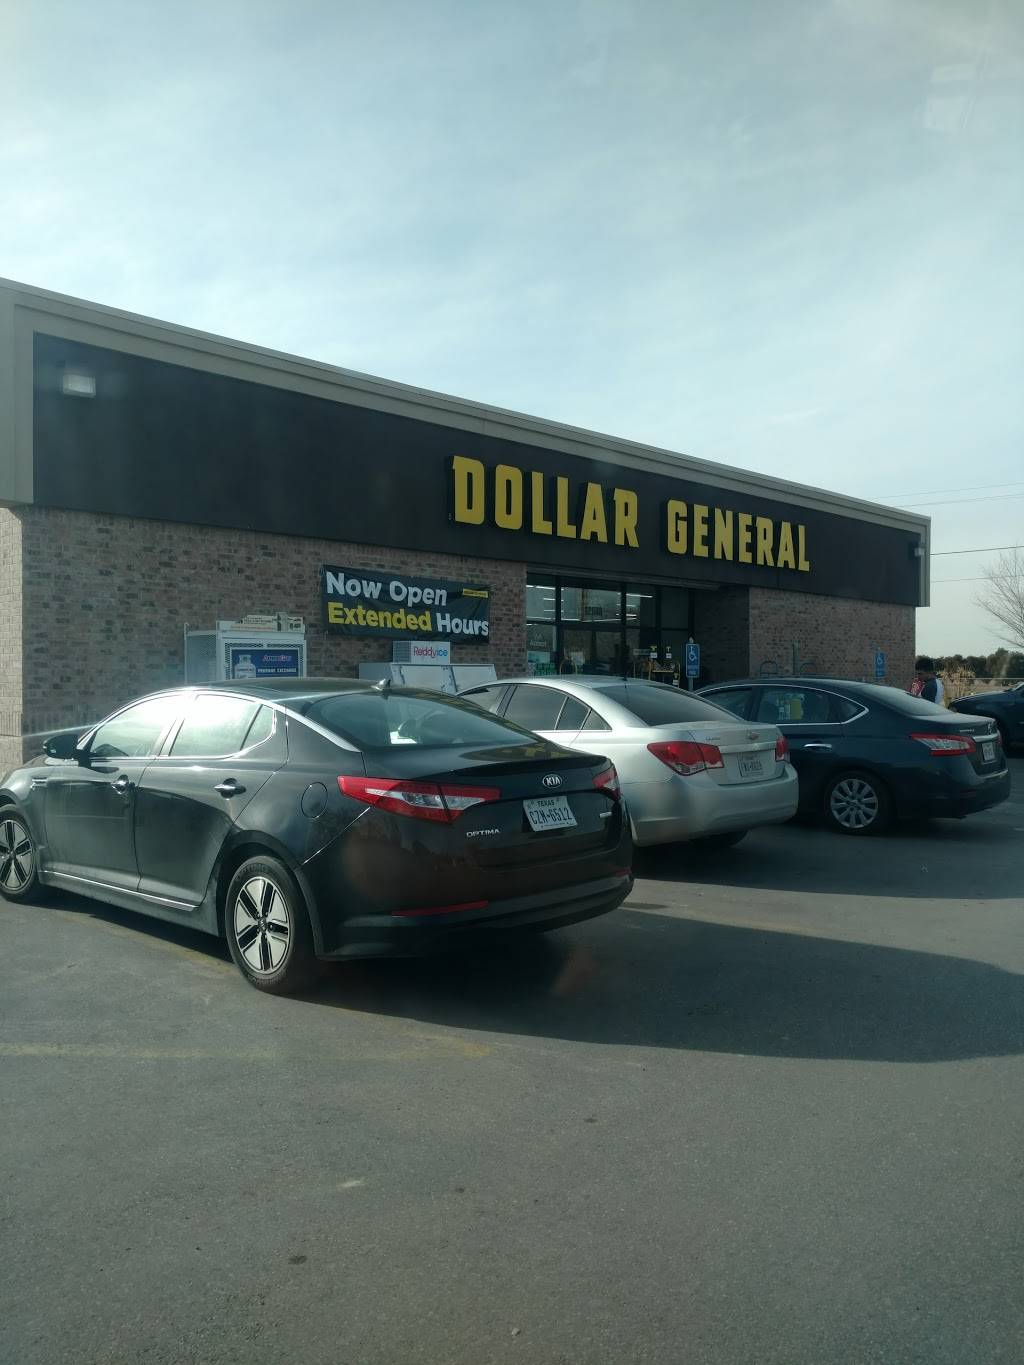 Dollar General - home goods store  | Photo 1 of 6 | Address: 12686 Alameda Ave, Clint, TX 79836, USA | Phone: (915) 267-1386